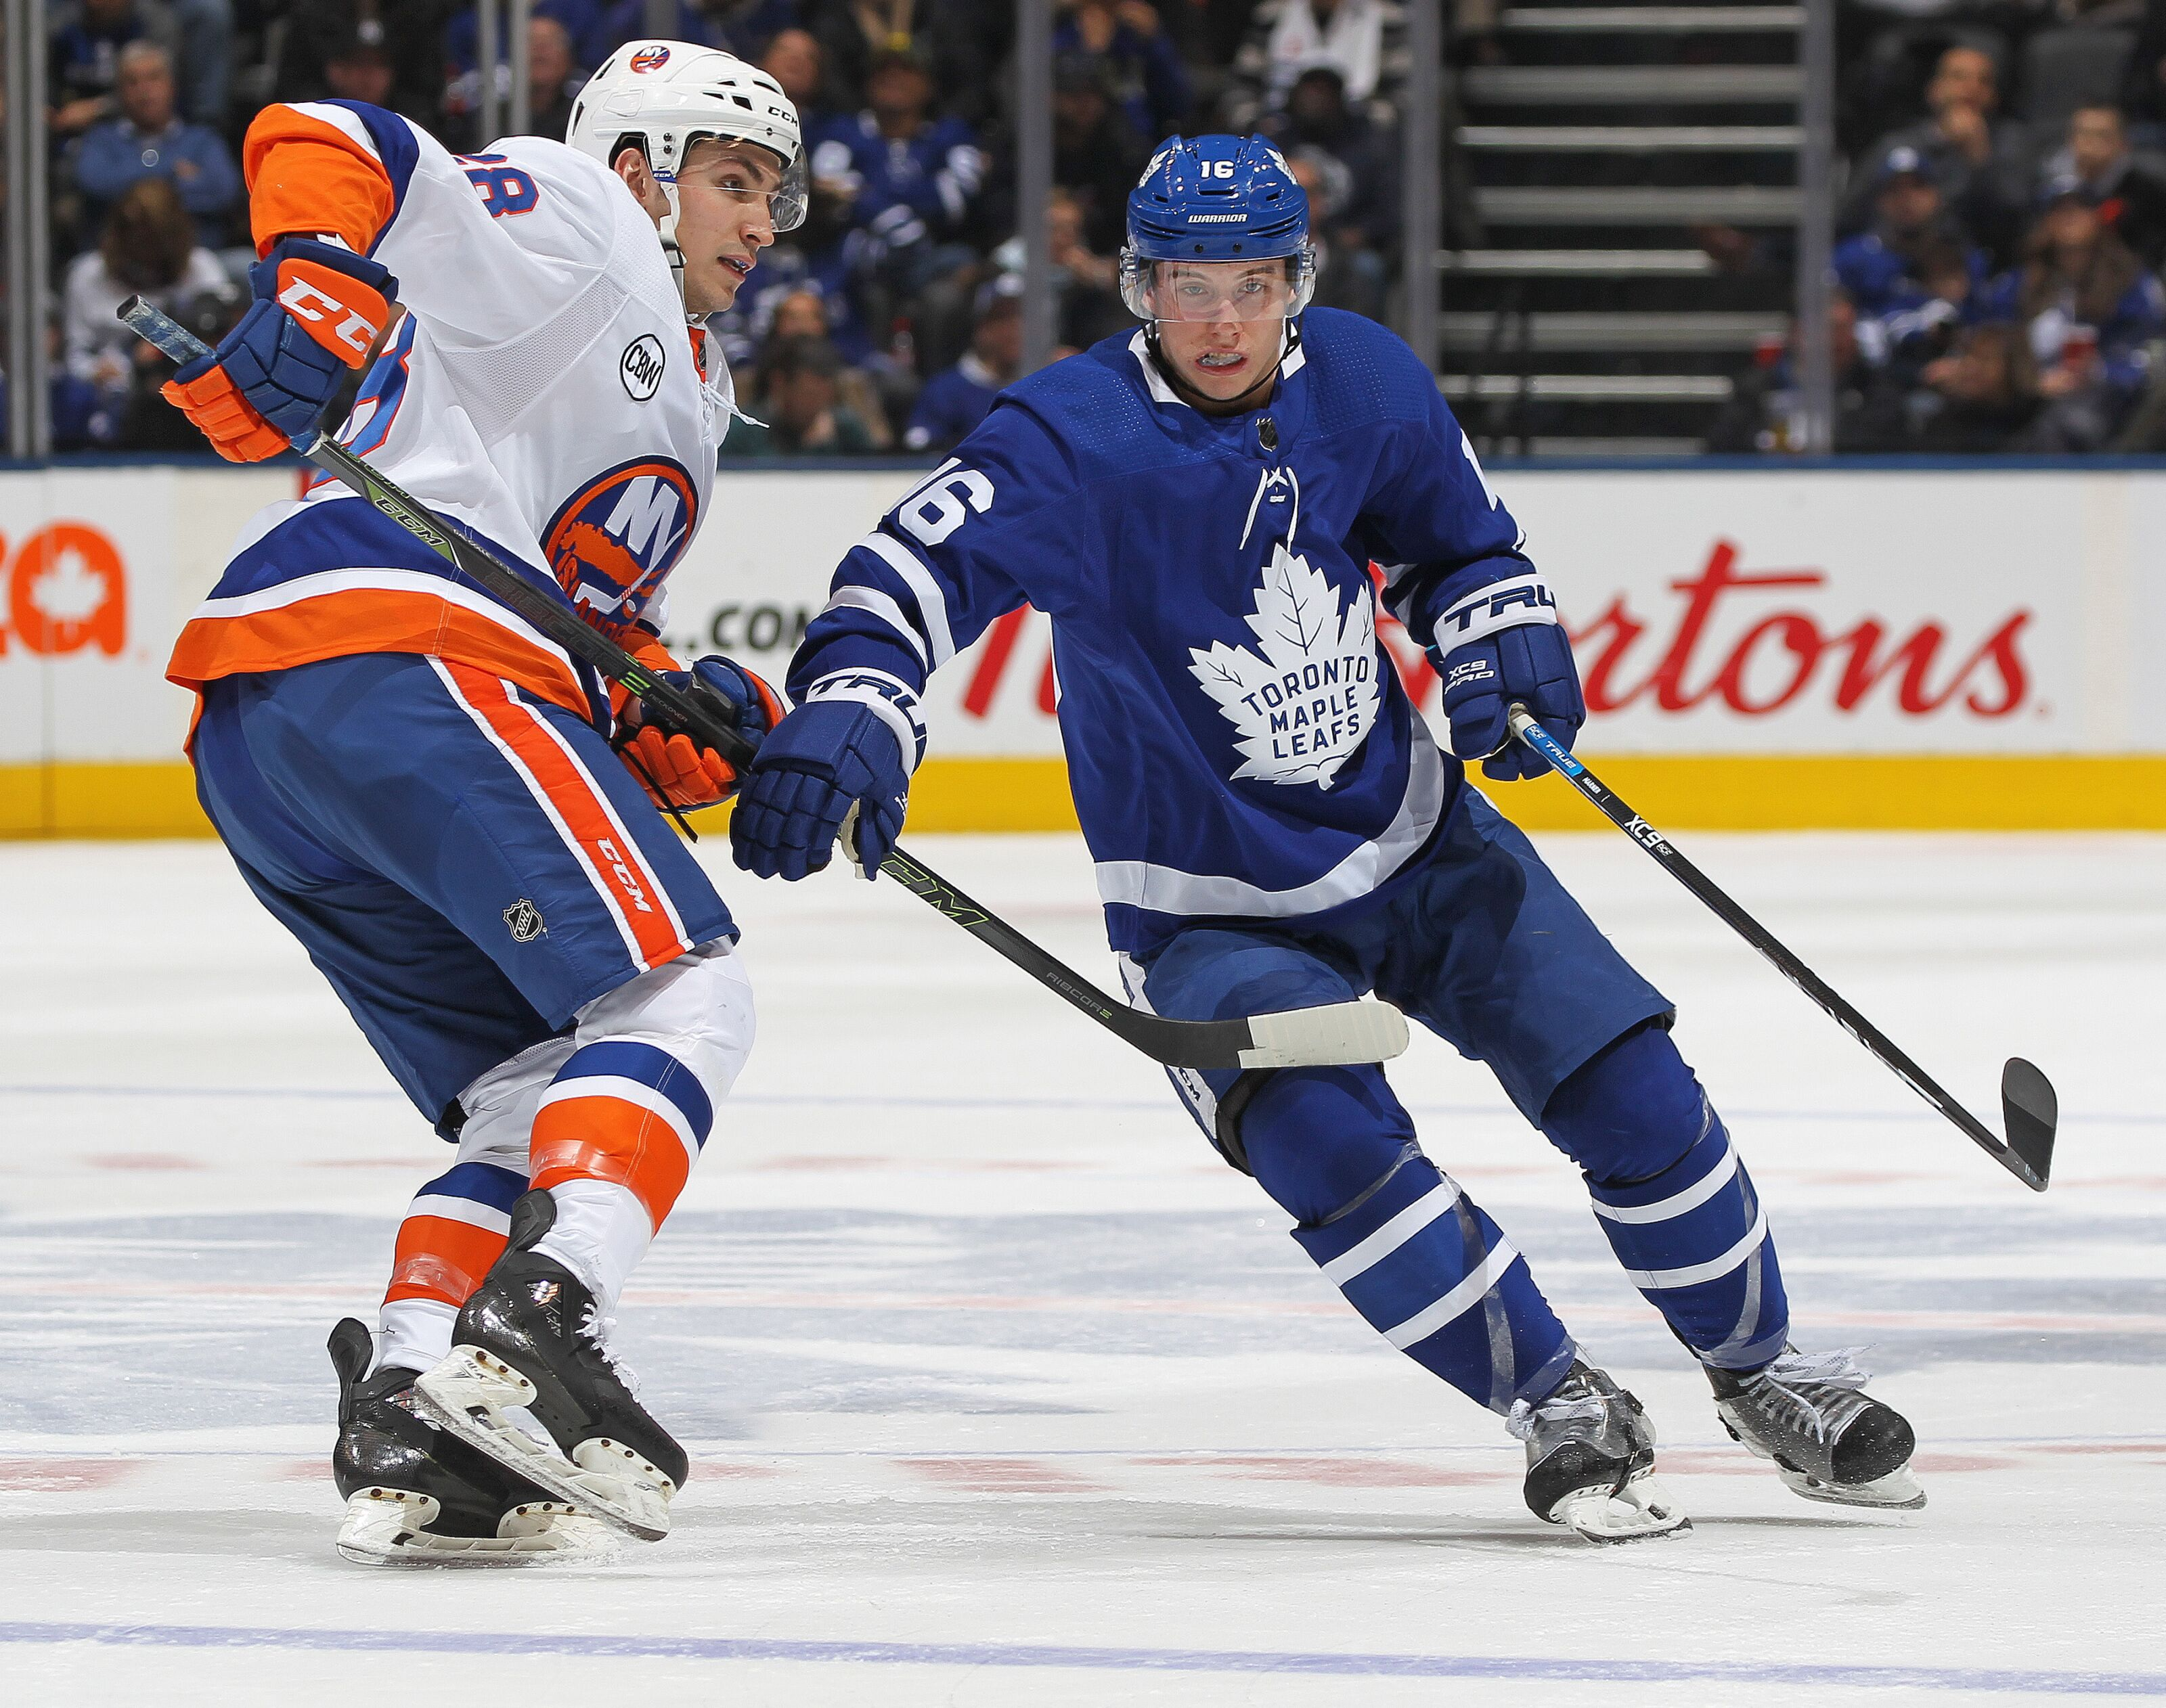 Toronto Maple Leafs: The Final Assessment of the Summer